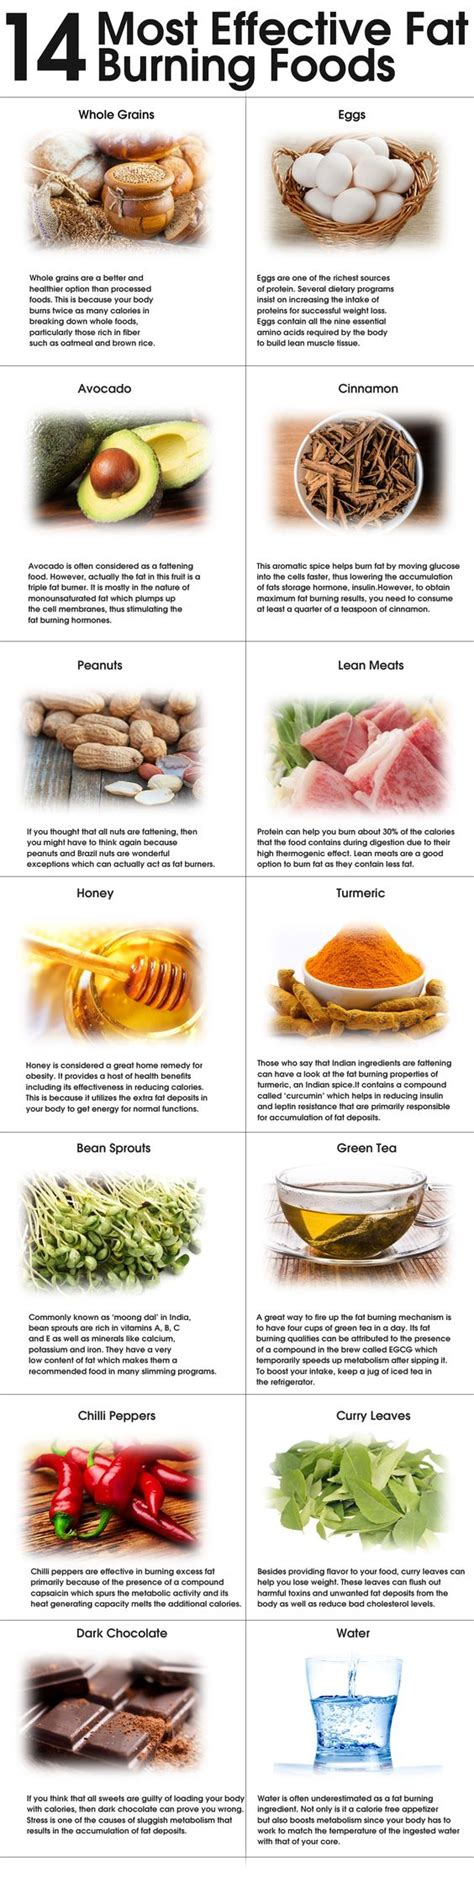 3 foods that contain healthy fats health discount codes and burning foods on